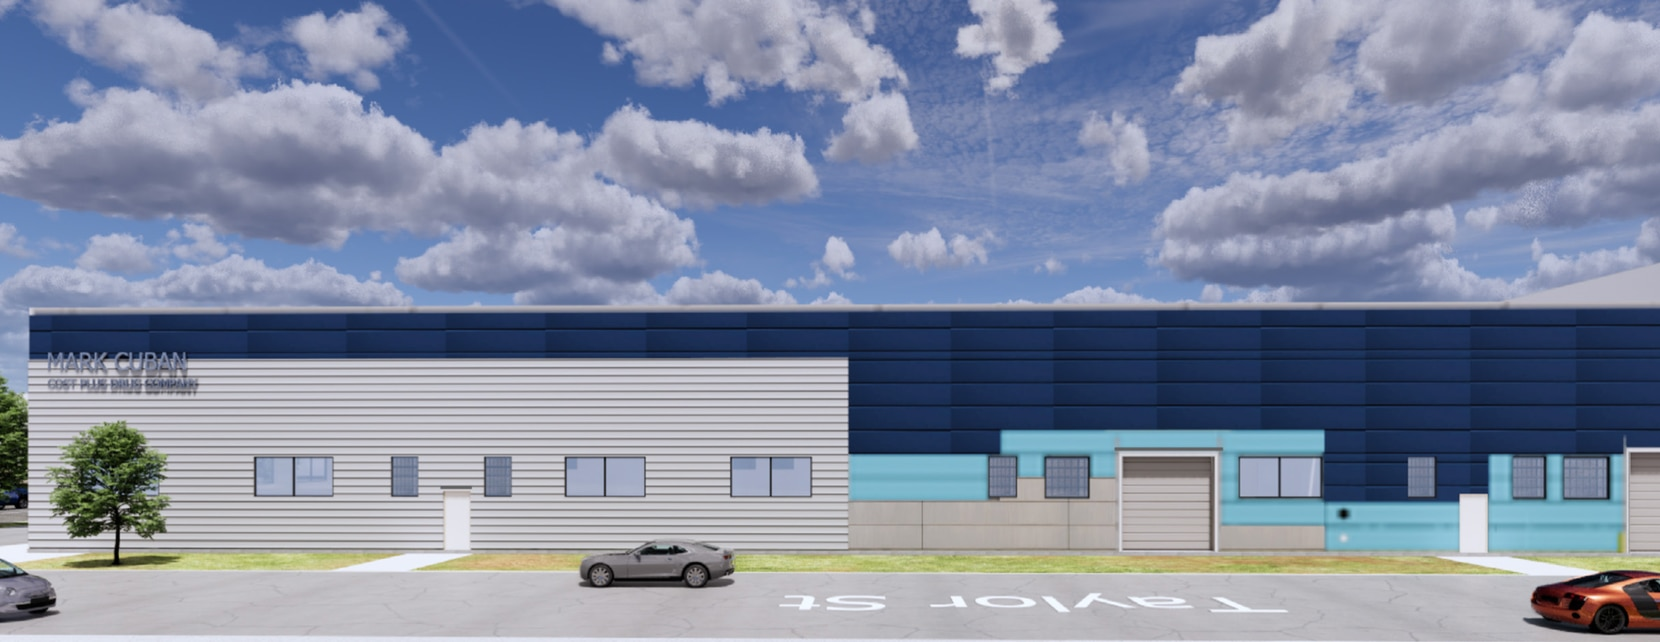 A rendering of the Mark Cuban Cost Plus Drug Company pharmaceutical facility planned to be completed by 2022.